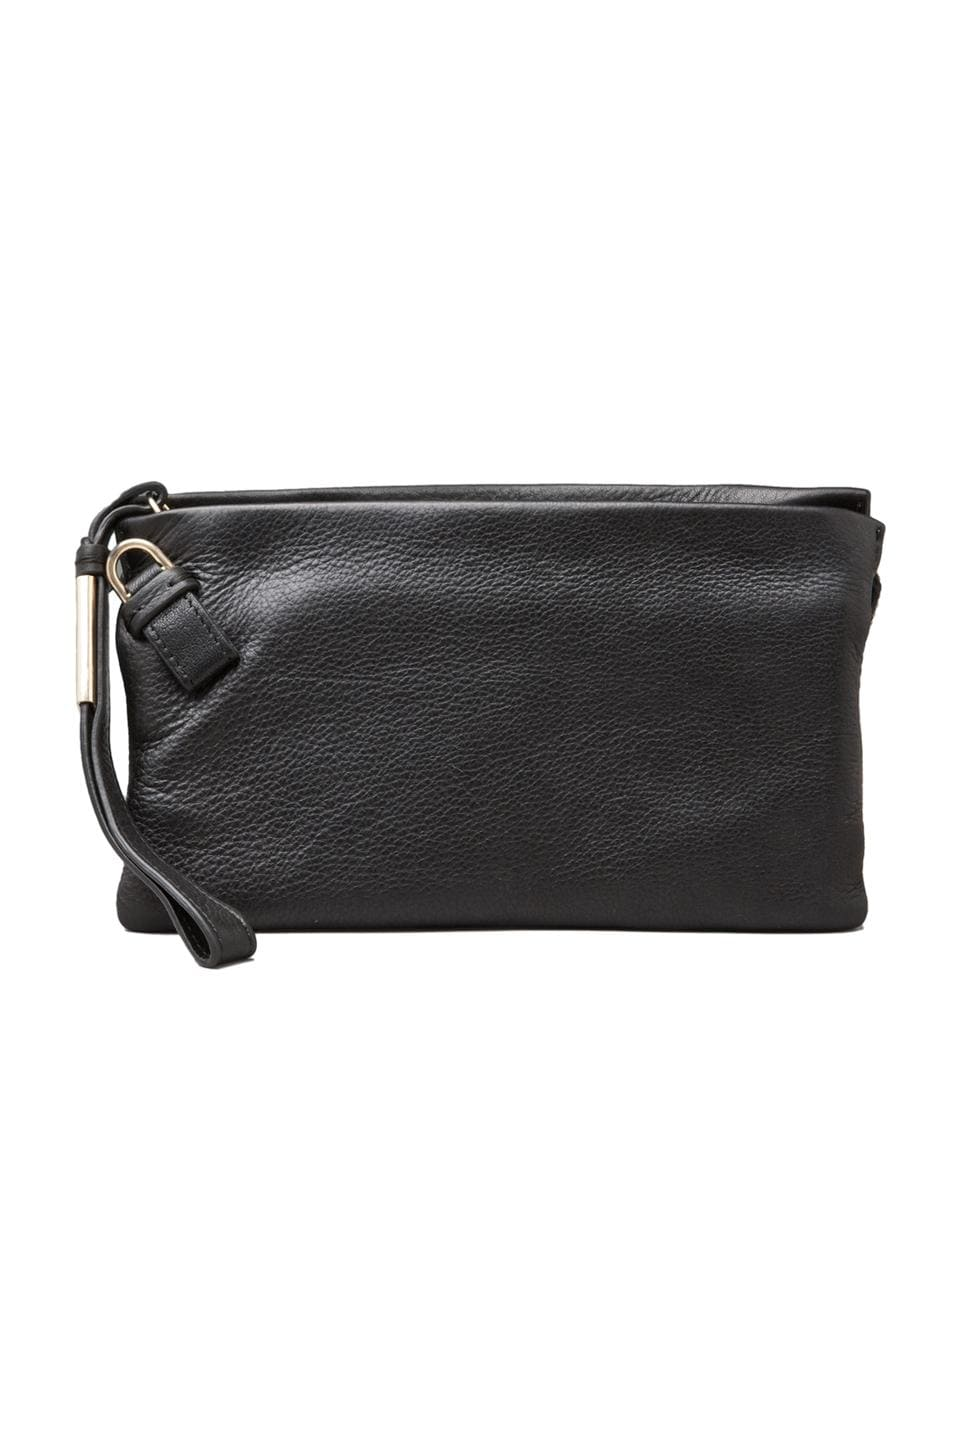 Foley + Corinna Cache Crossbody in Black